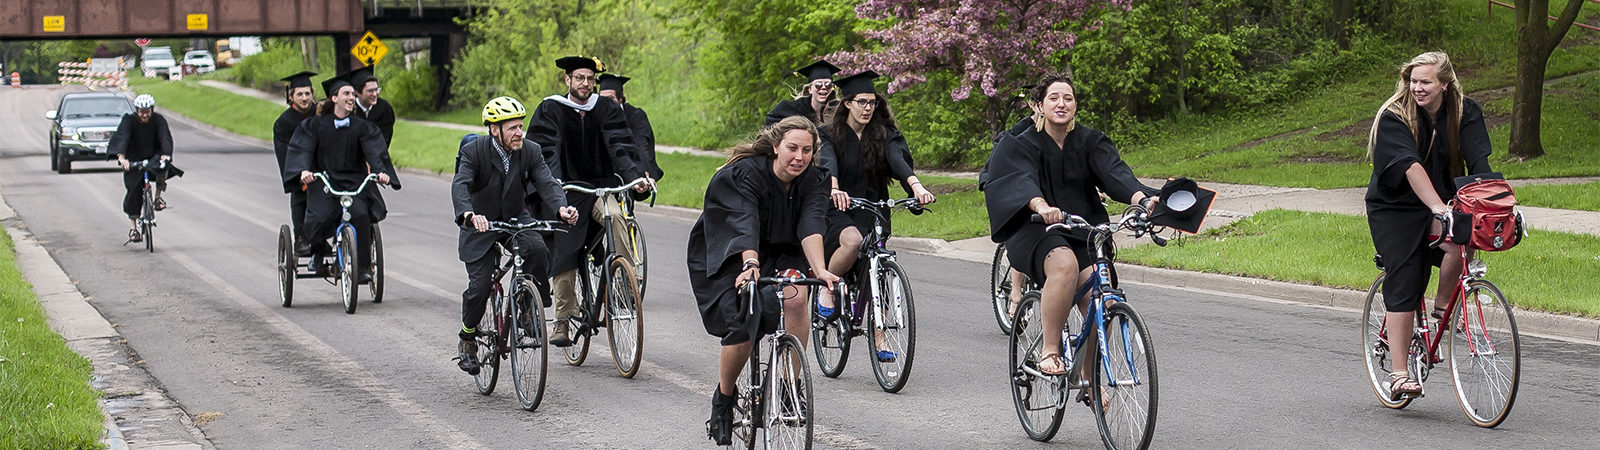 Northland College Commencement bike ride